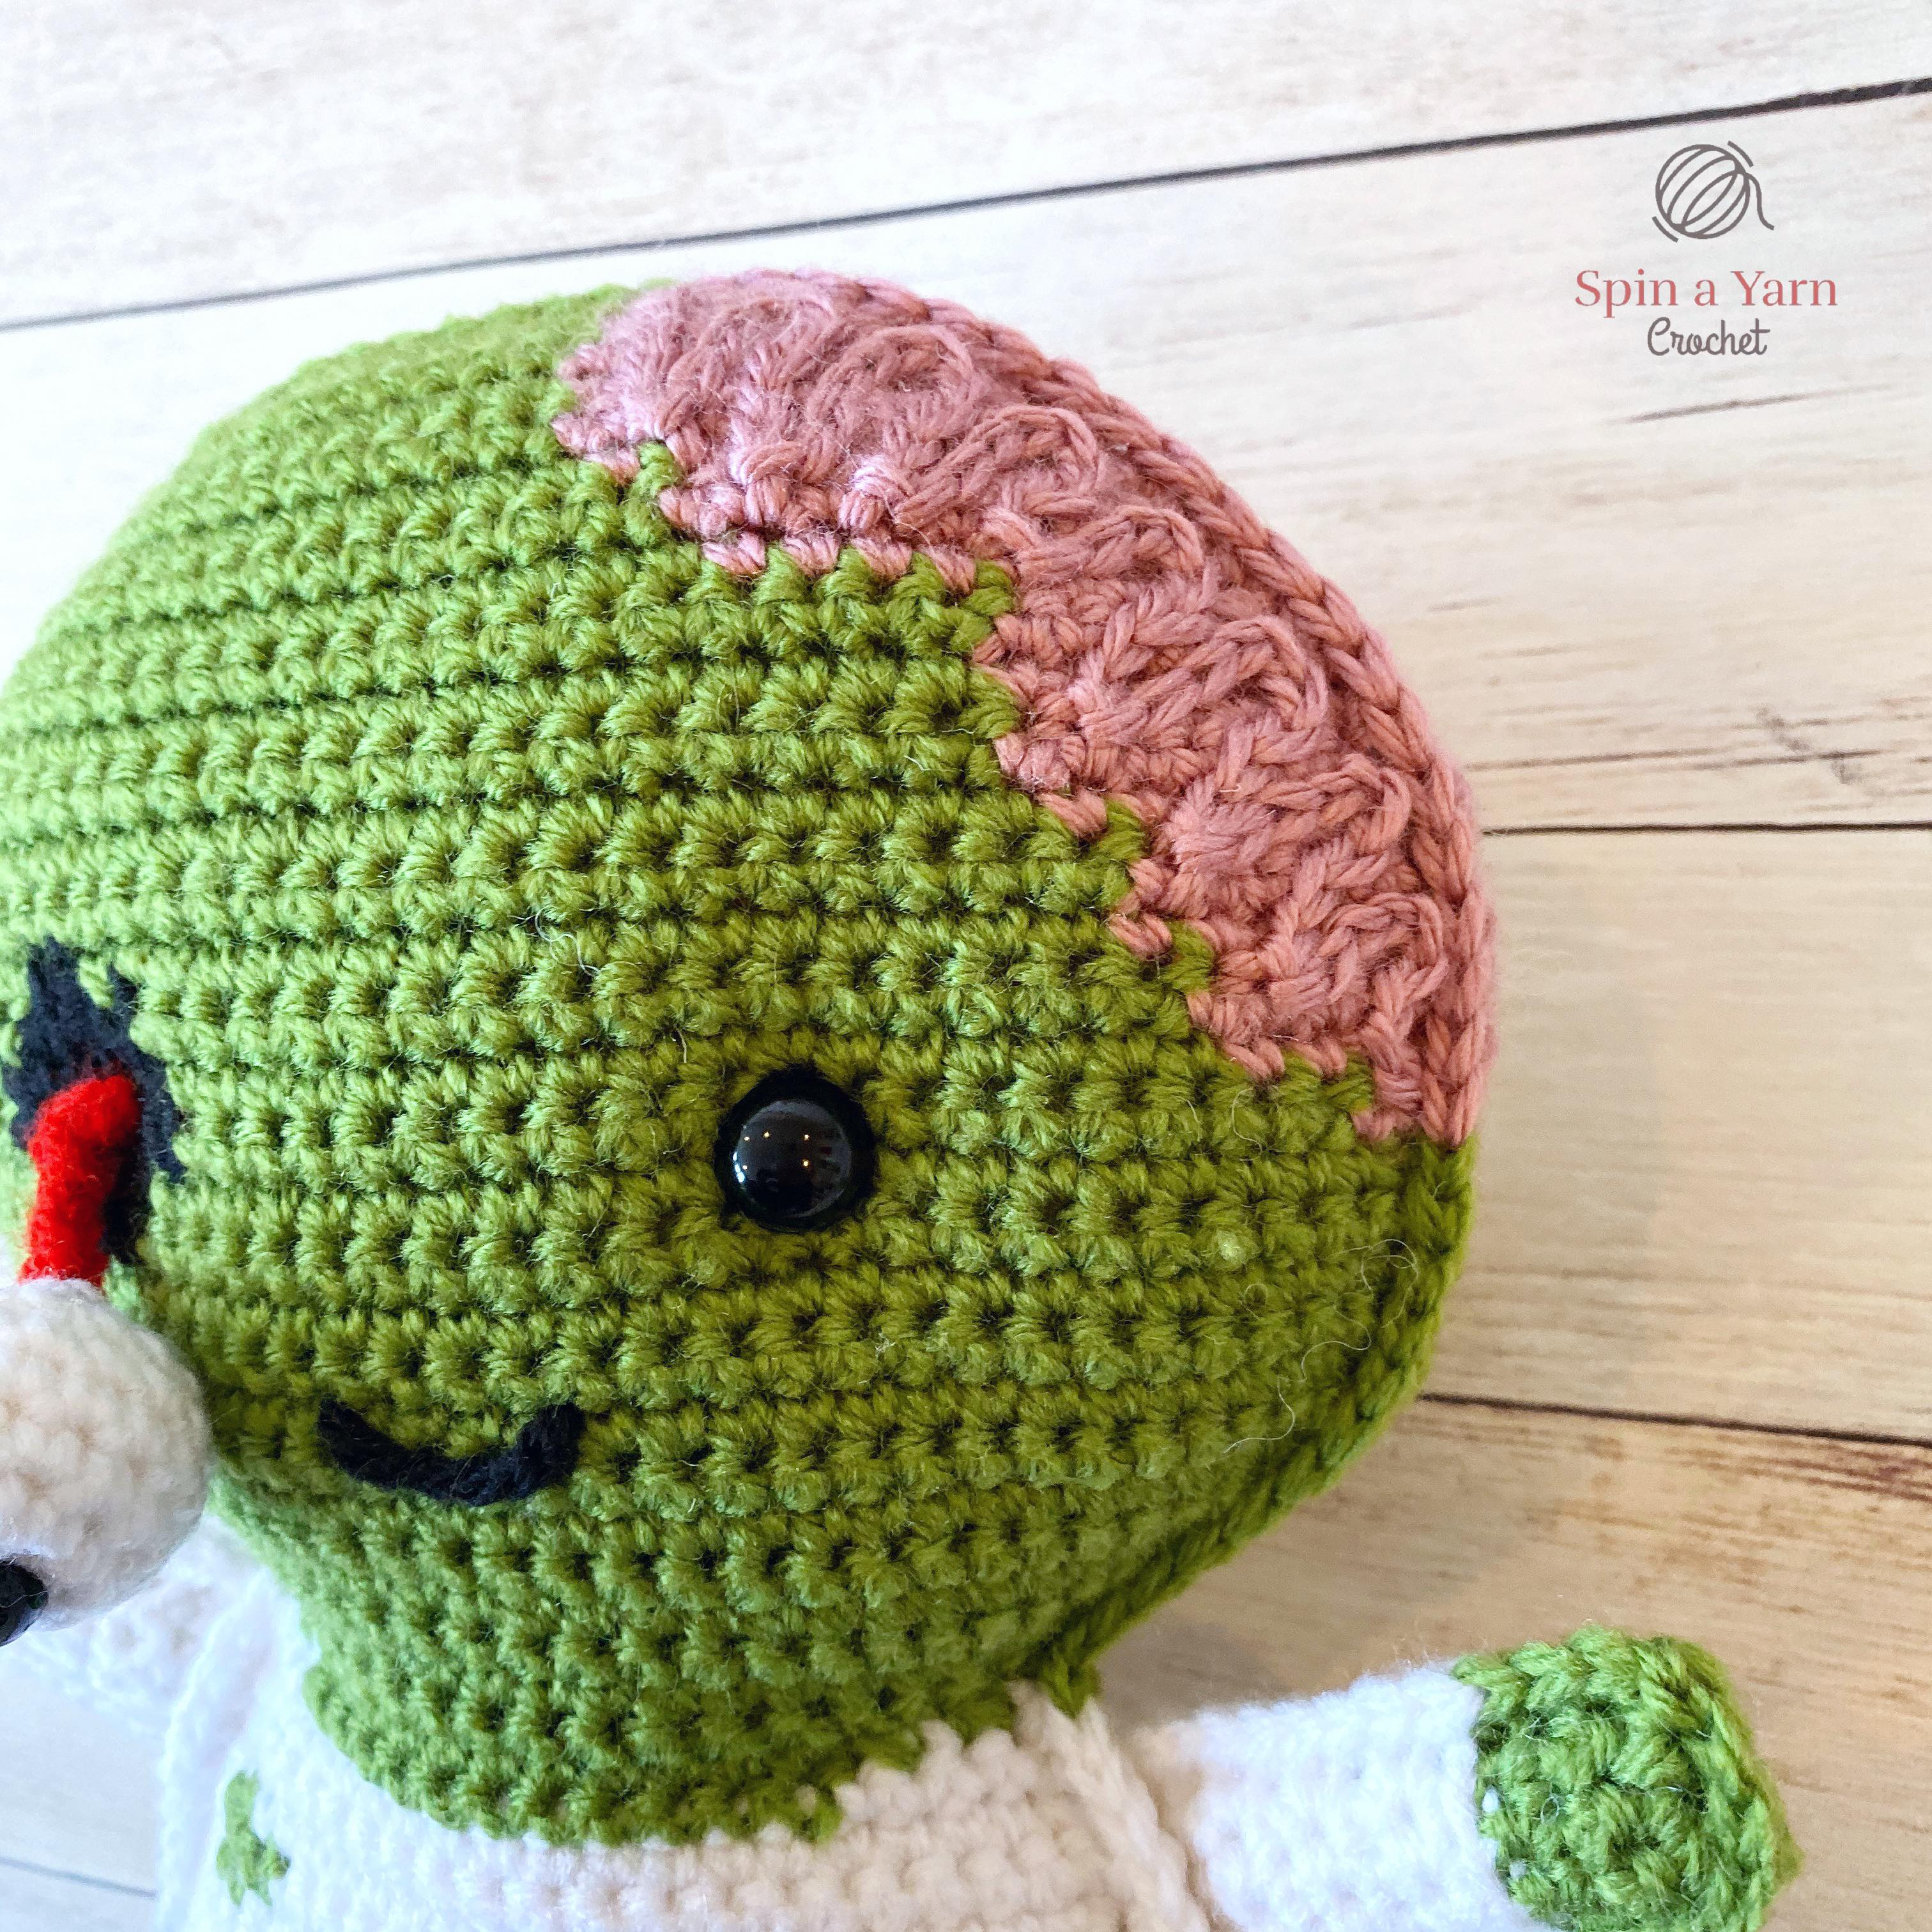 Amigurumi Zombie Pack (With images) | Crochet patterns amigurumi ... | 3024x3024